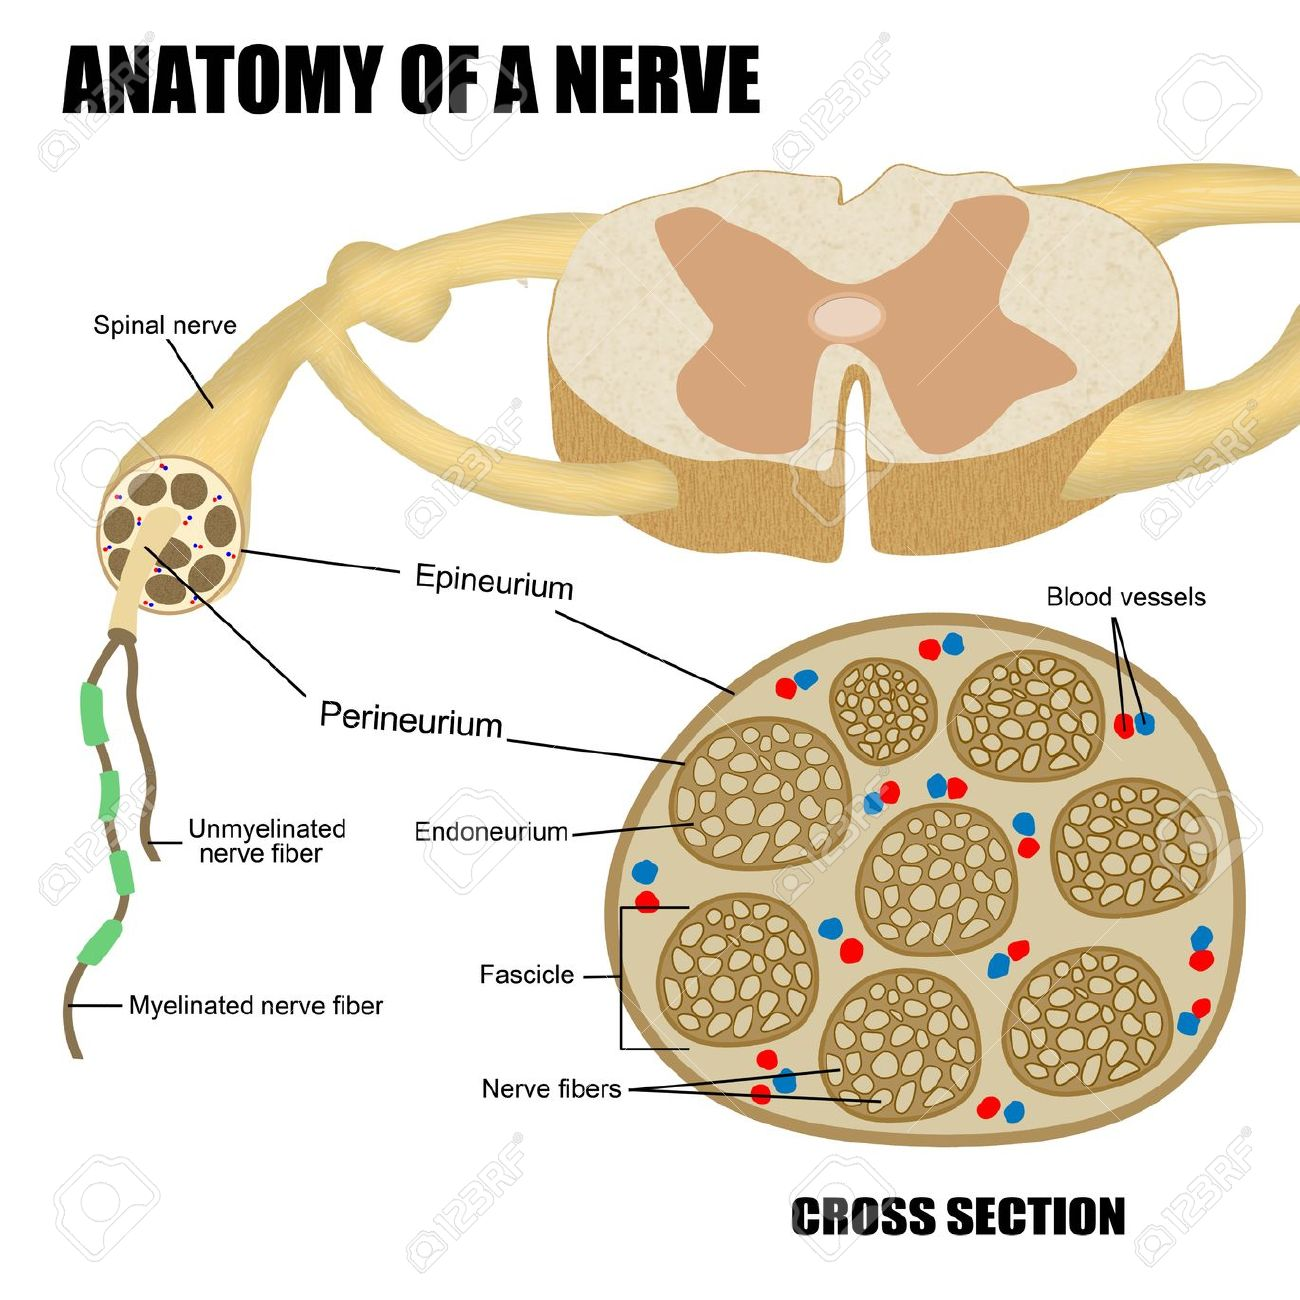 hight resolution of anatomy of a nerve for basic medical education for clinics schools stock photo 18207744